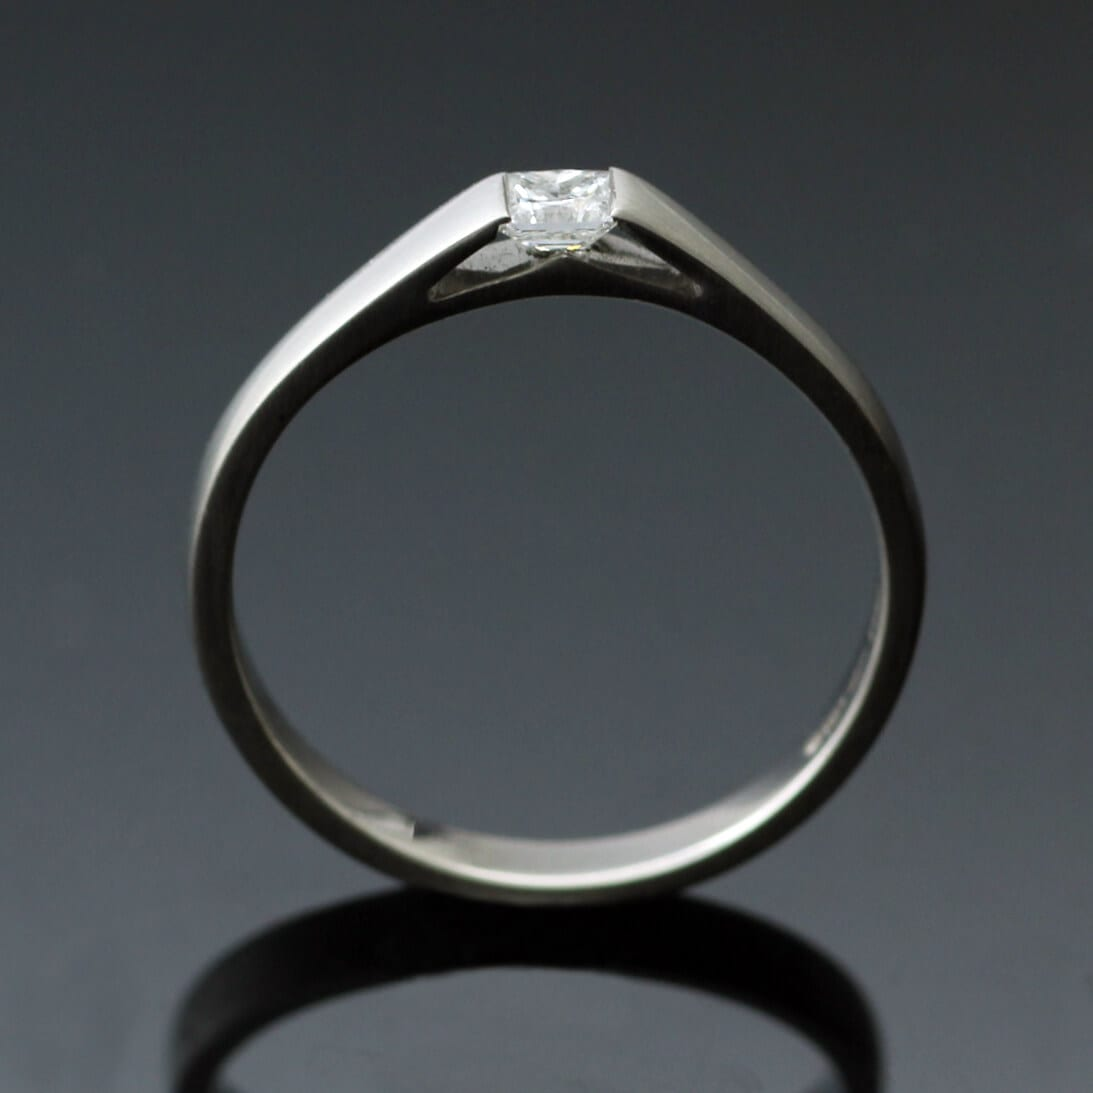 Contemporary Platinum and Diamond engagement ring by Julian Stephens